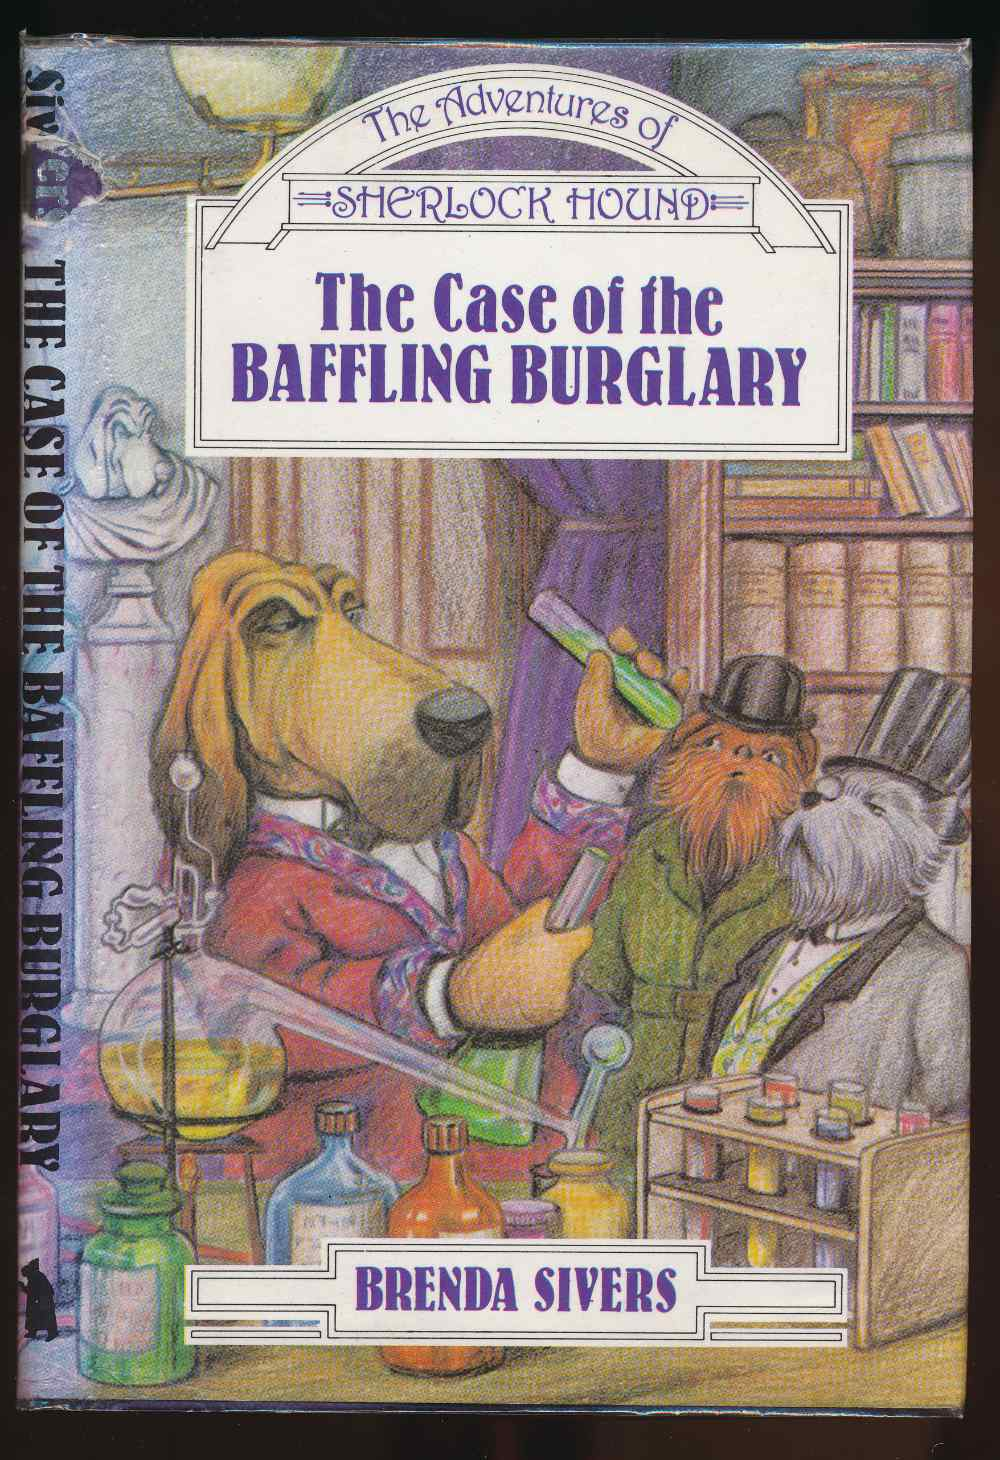 The case of the baffling burglary